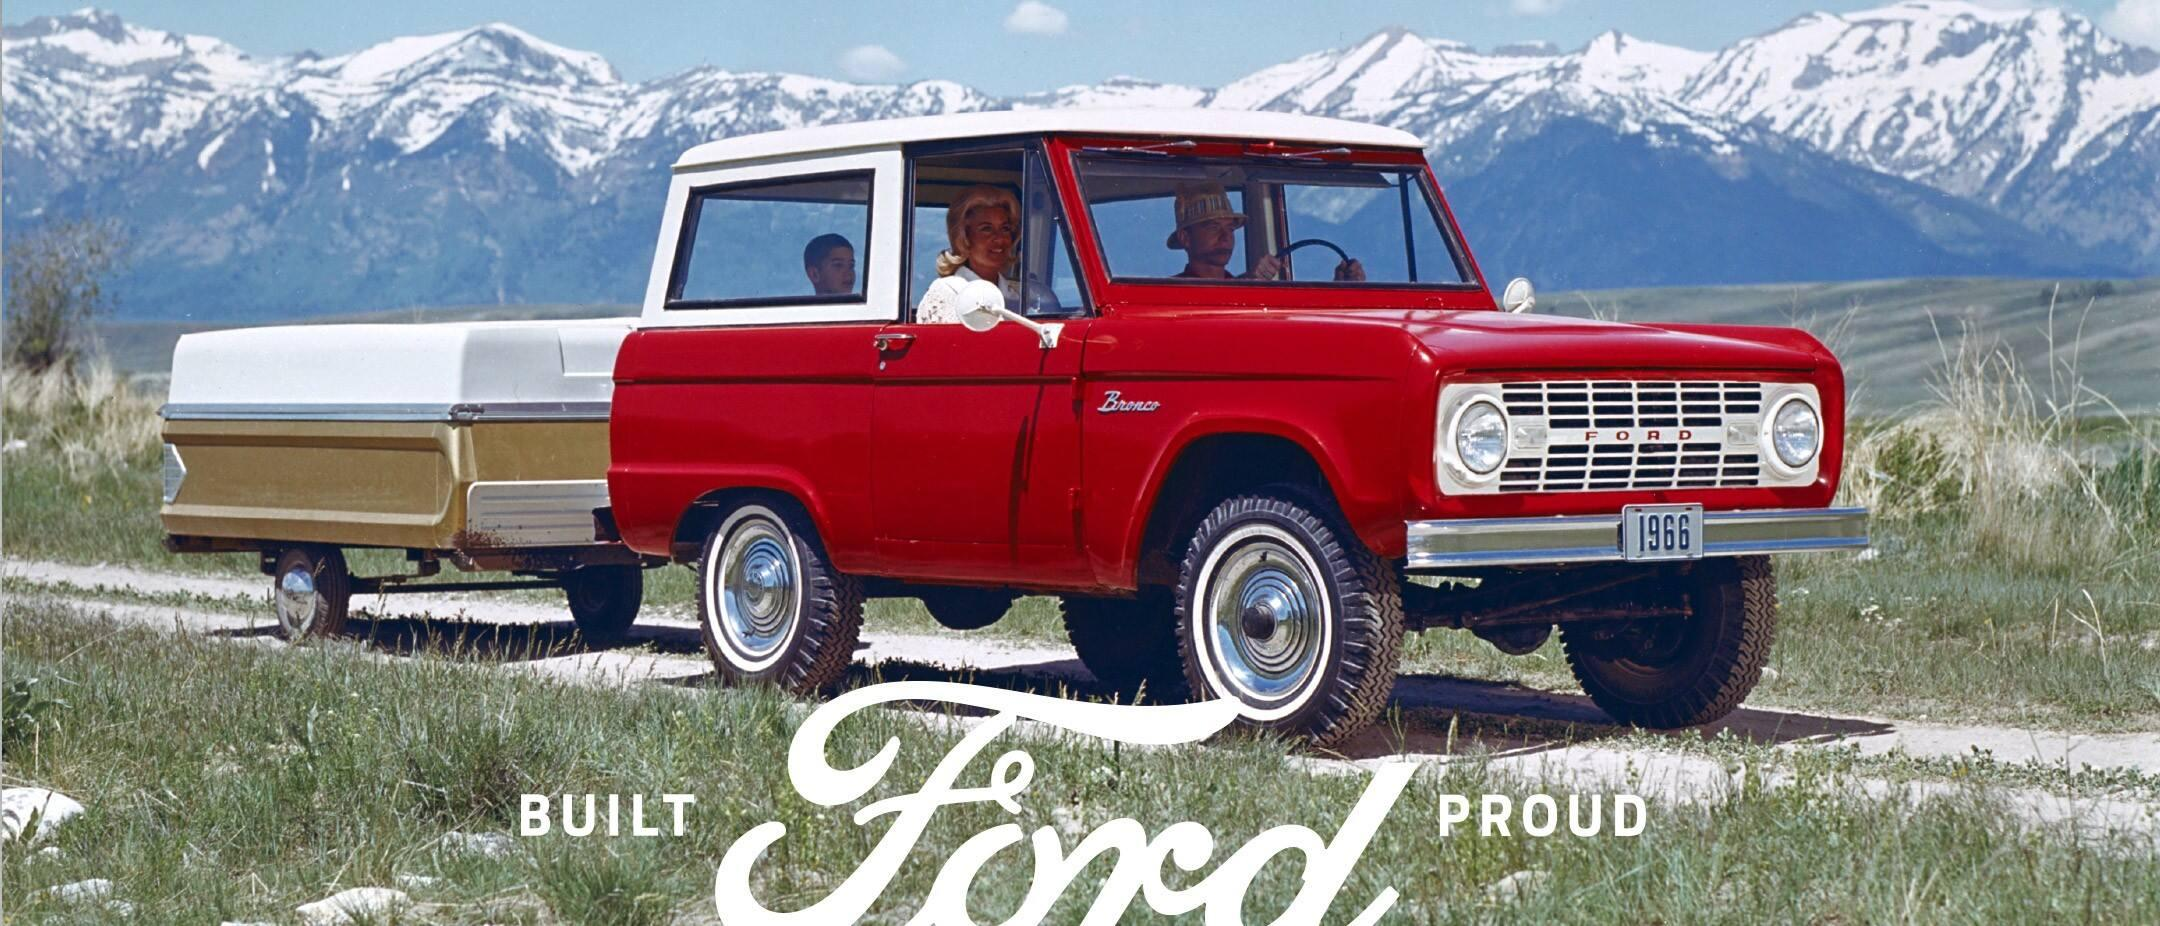 Ford Bronco Rides Again | See Its Heritage | South Bay Ford